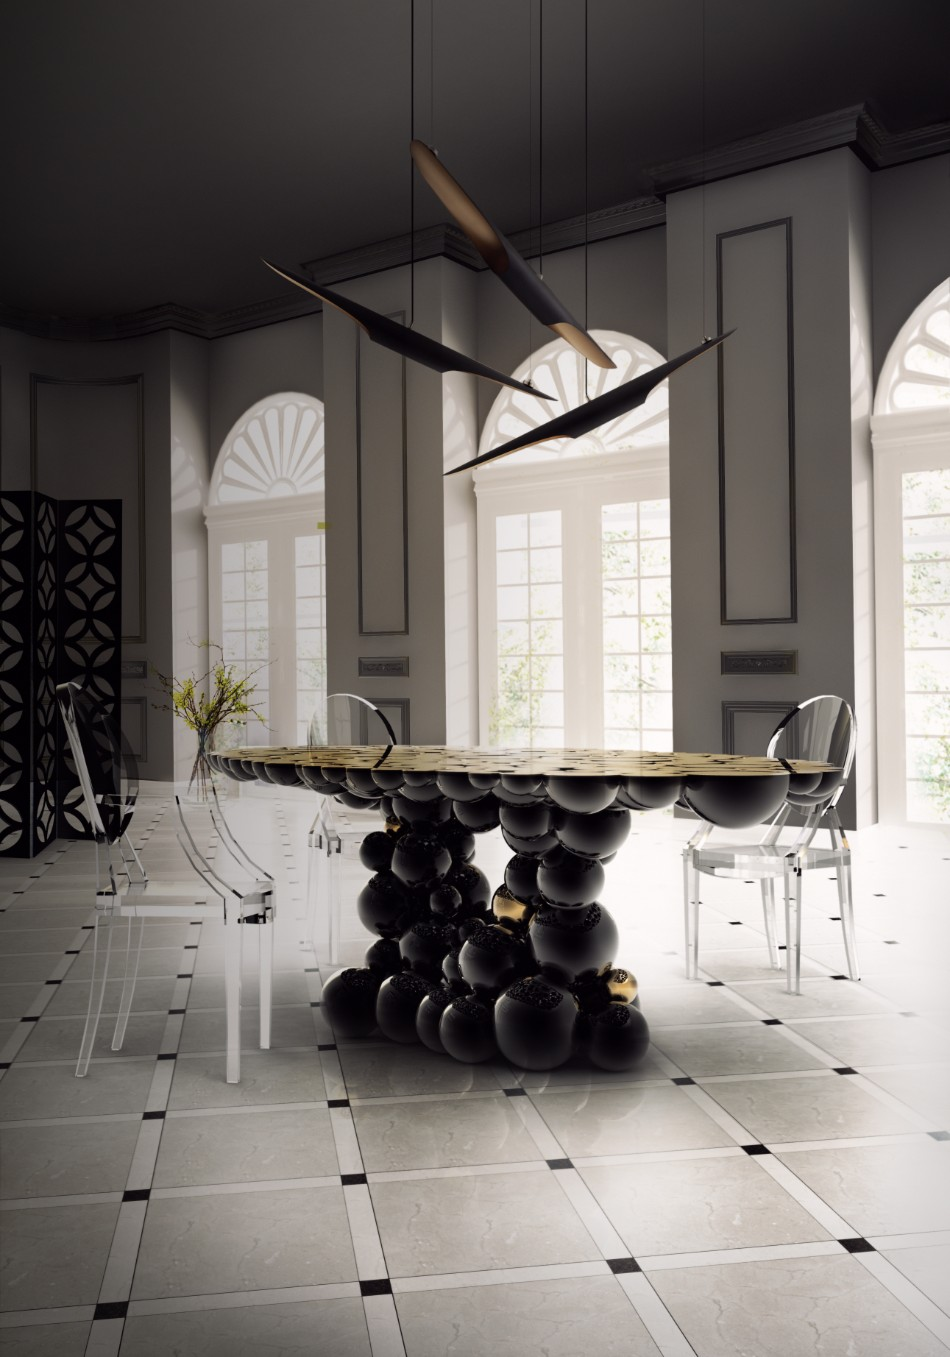 EXCLUSIVE DESIGN: CREATIVE TABLES design trends Dining Table Design Trends For This Fall/Winter Dining Table Design Trends For This FallWinter 15